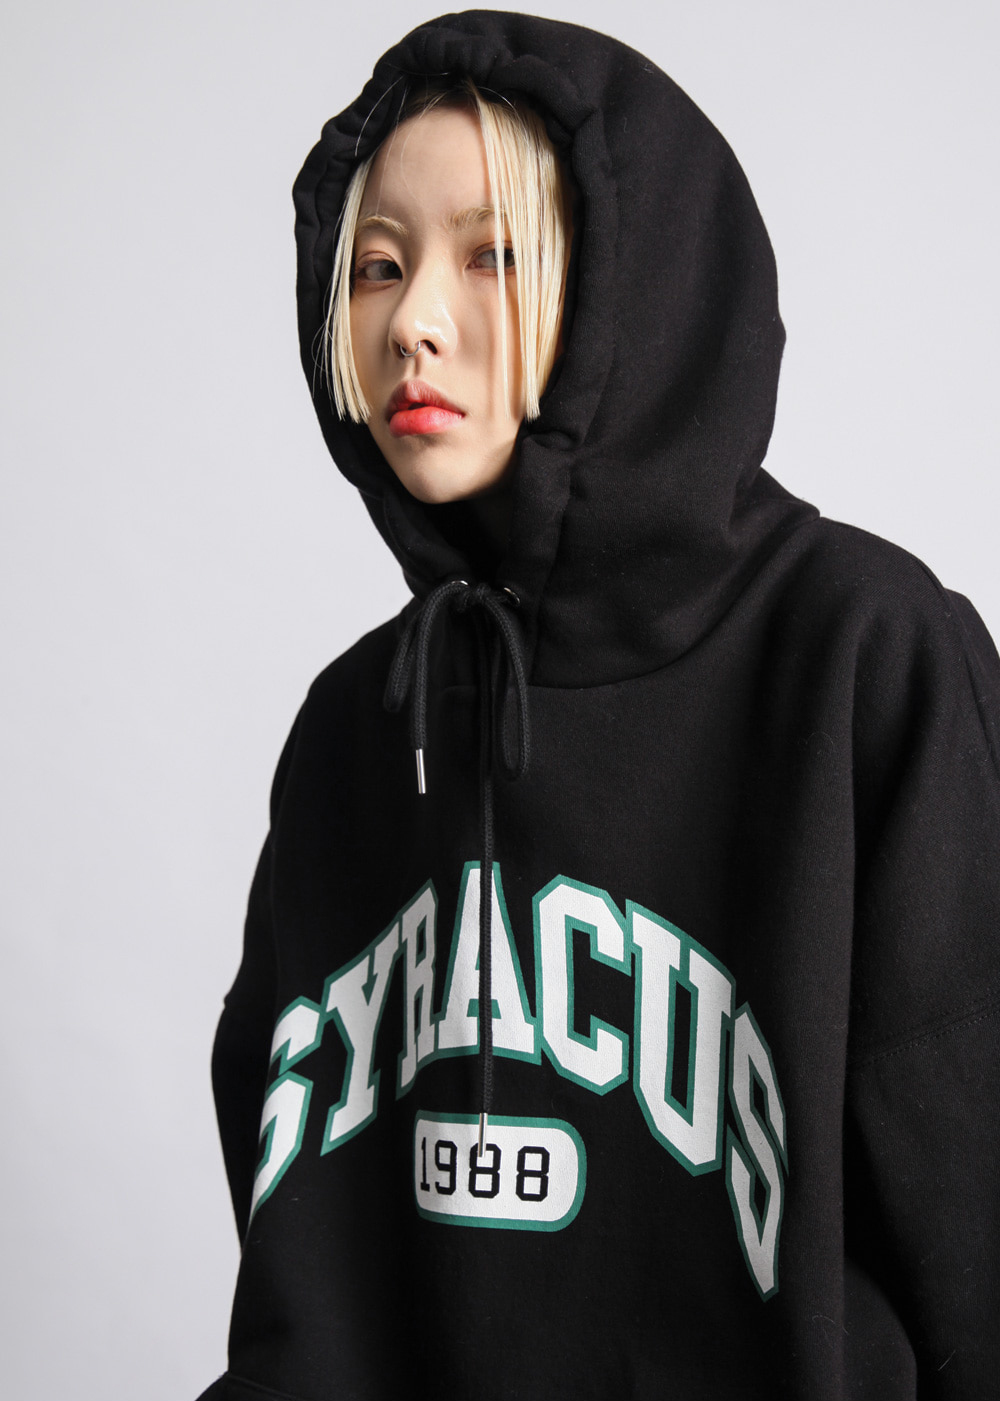 ☆OPEN THE DOOR☆ syracus boxy フーディ (2色展開) unisex